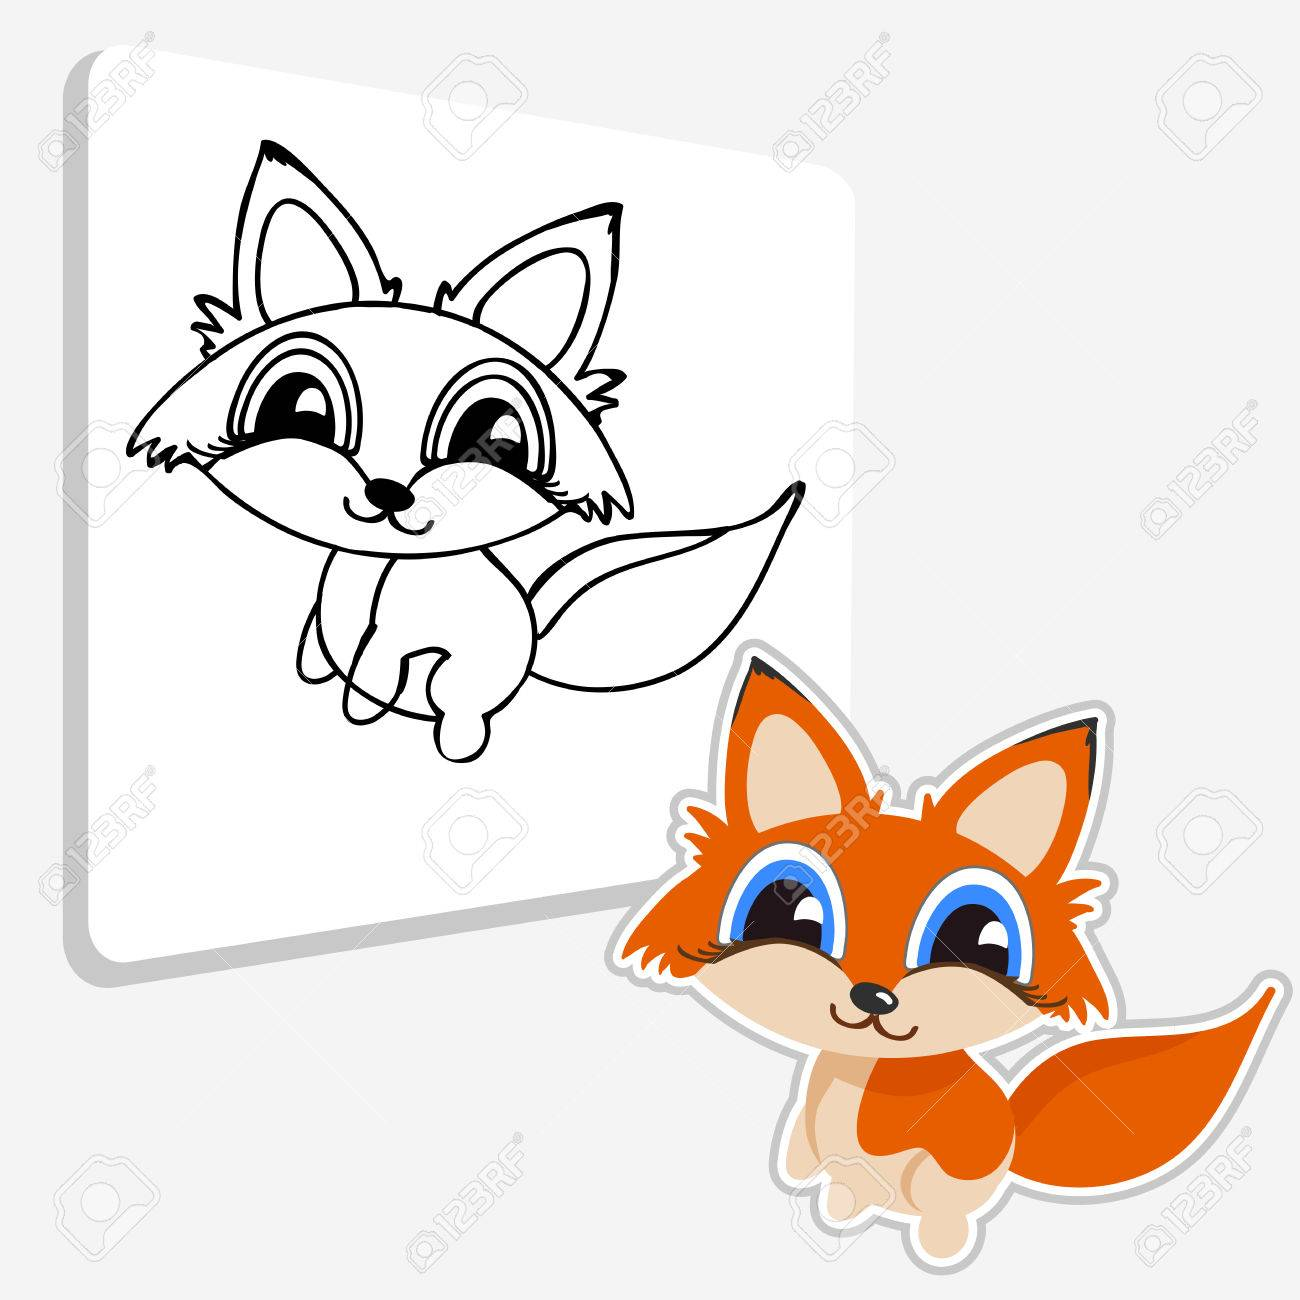 Coloring Pages. Baby Fox Coloring Page. Restore The Picture Inside ...